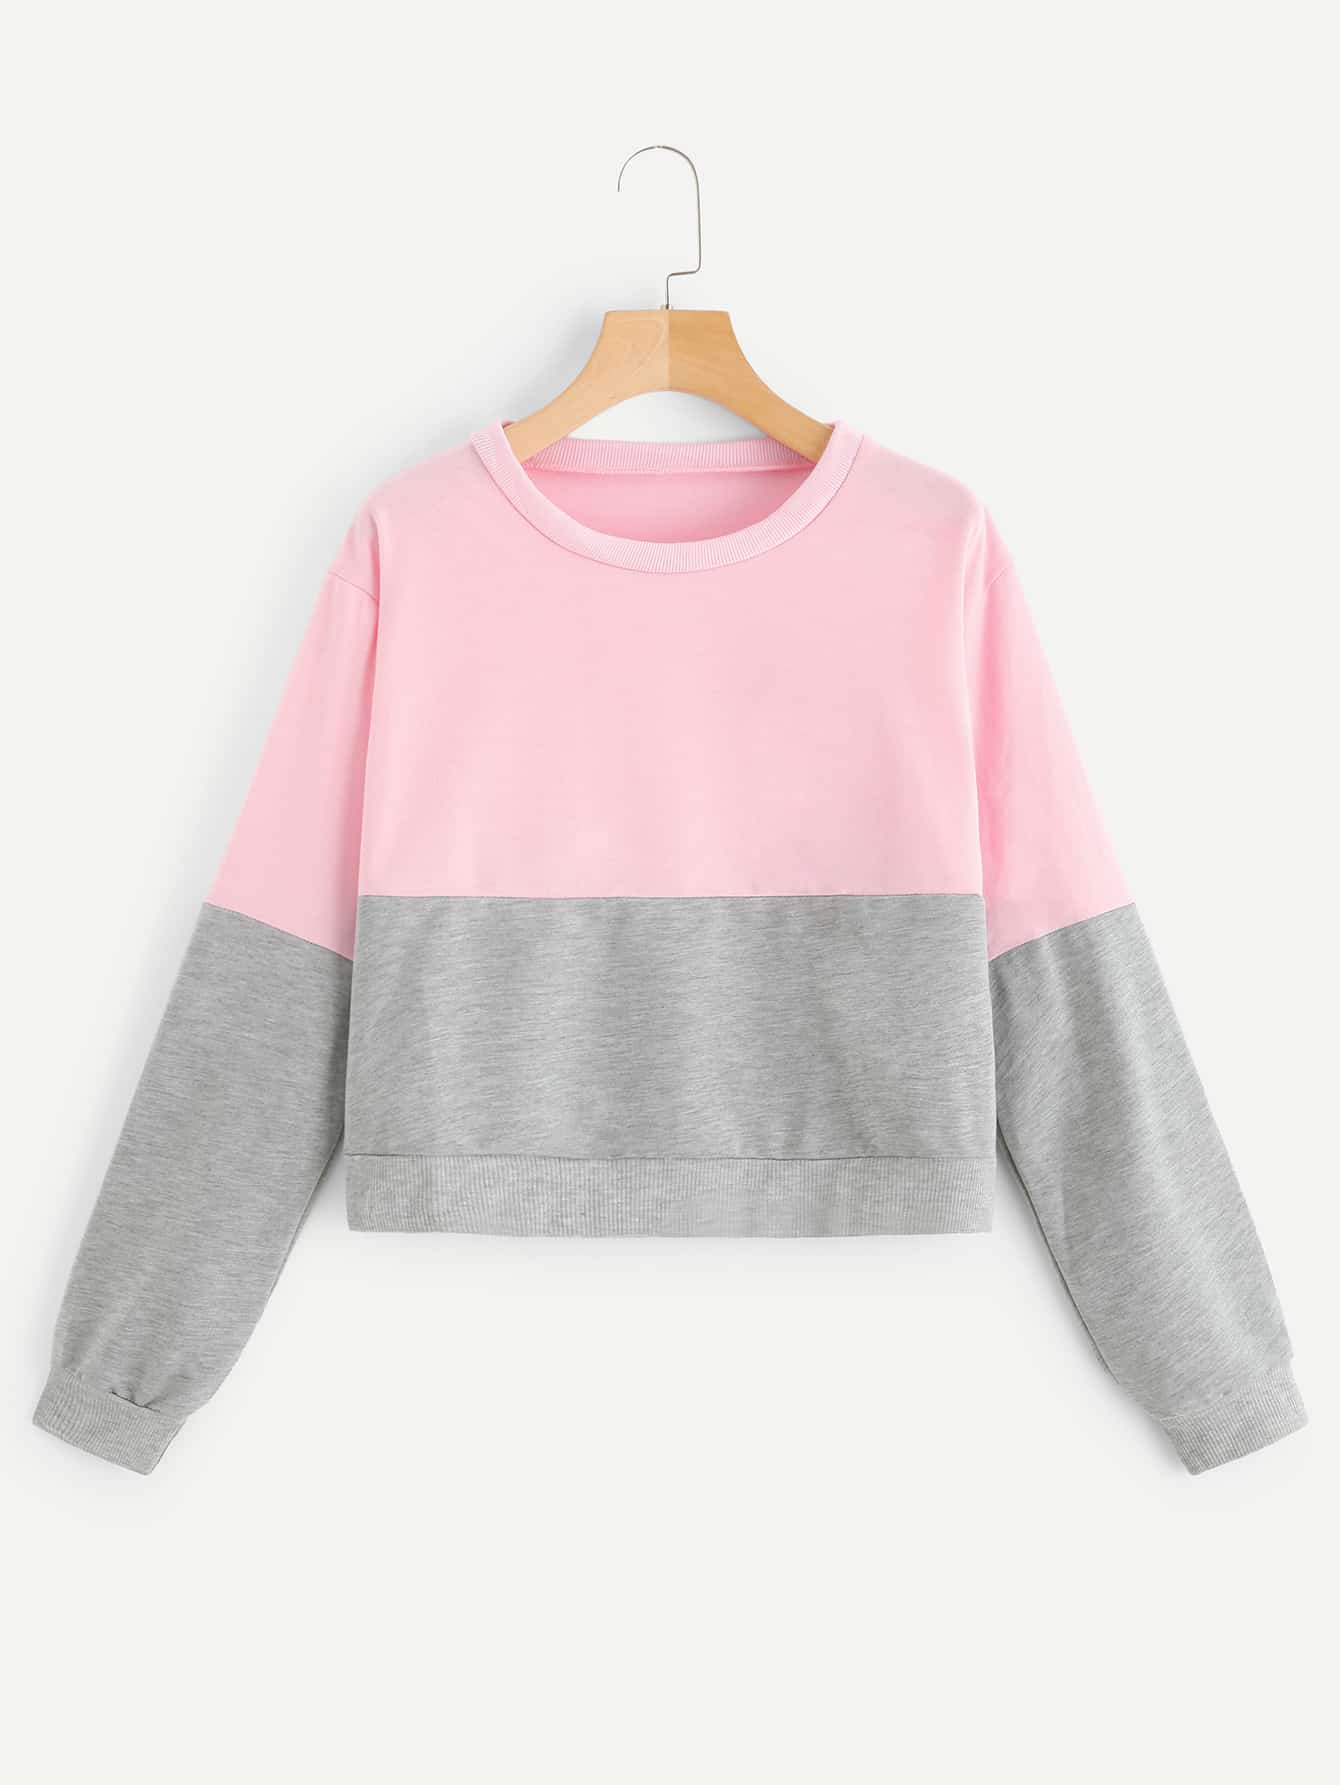 Drop Shoulder Two Tone Sweatshirt Drop Shoulder Two Tone Sweatshirt